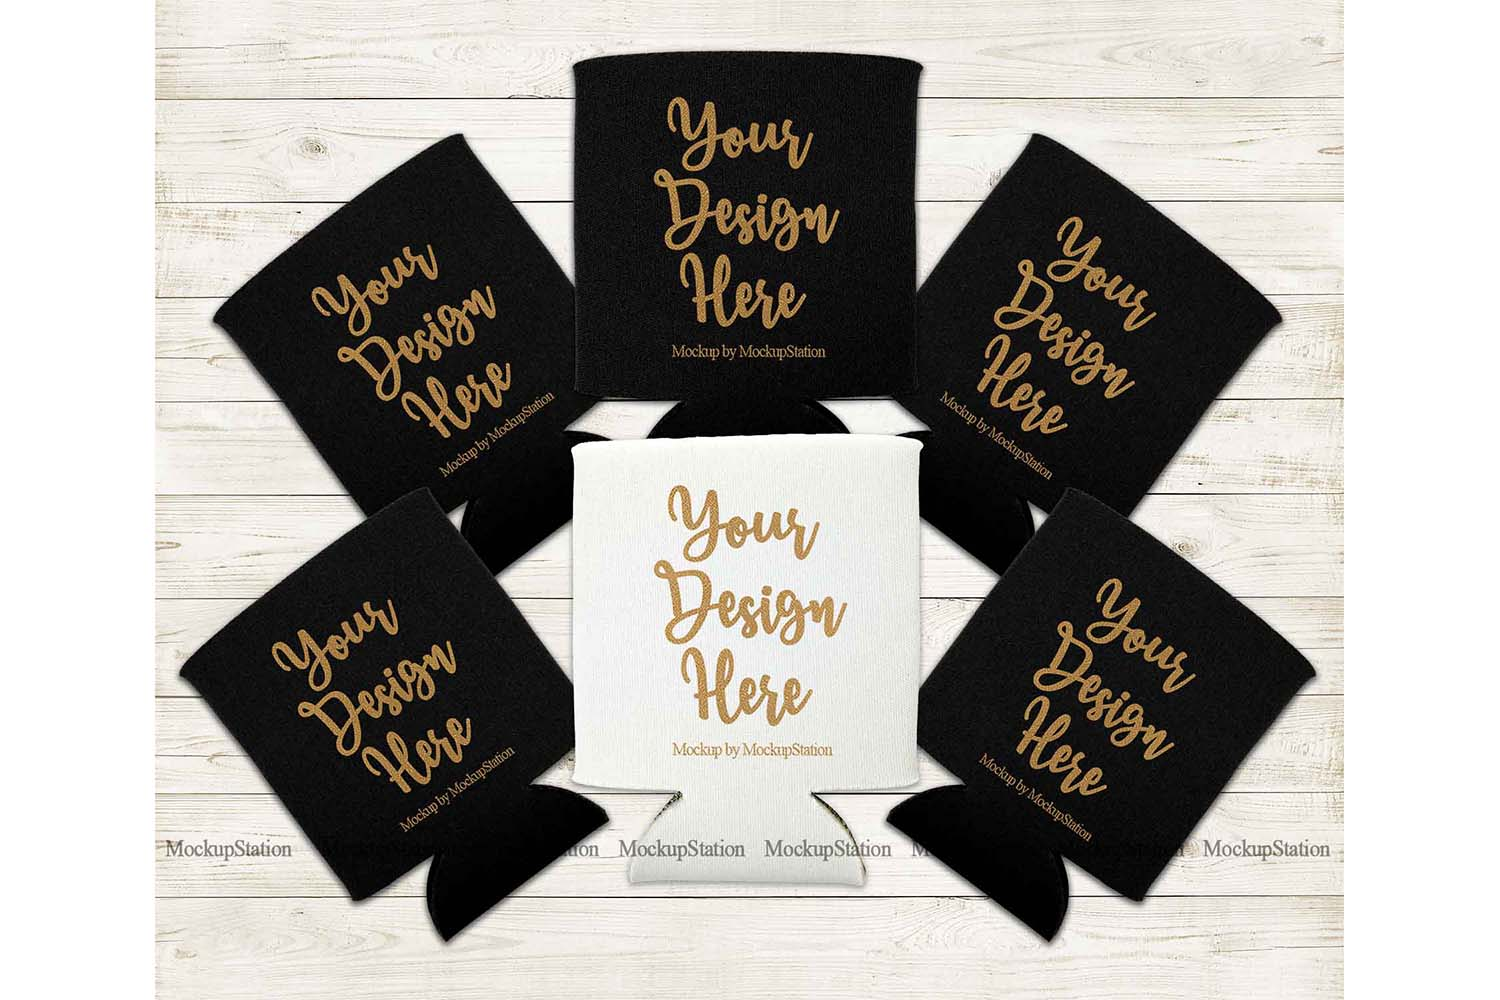 Bride Can Coolers Mockup, Black White Can Holder Flat Lay example image 1